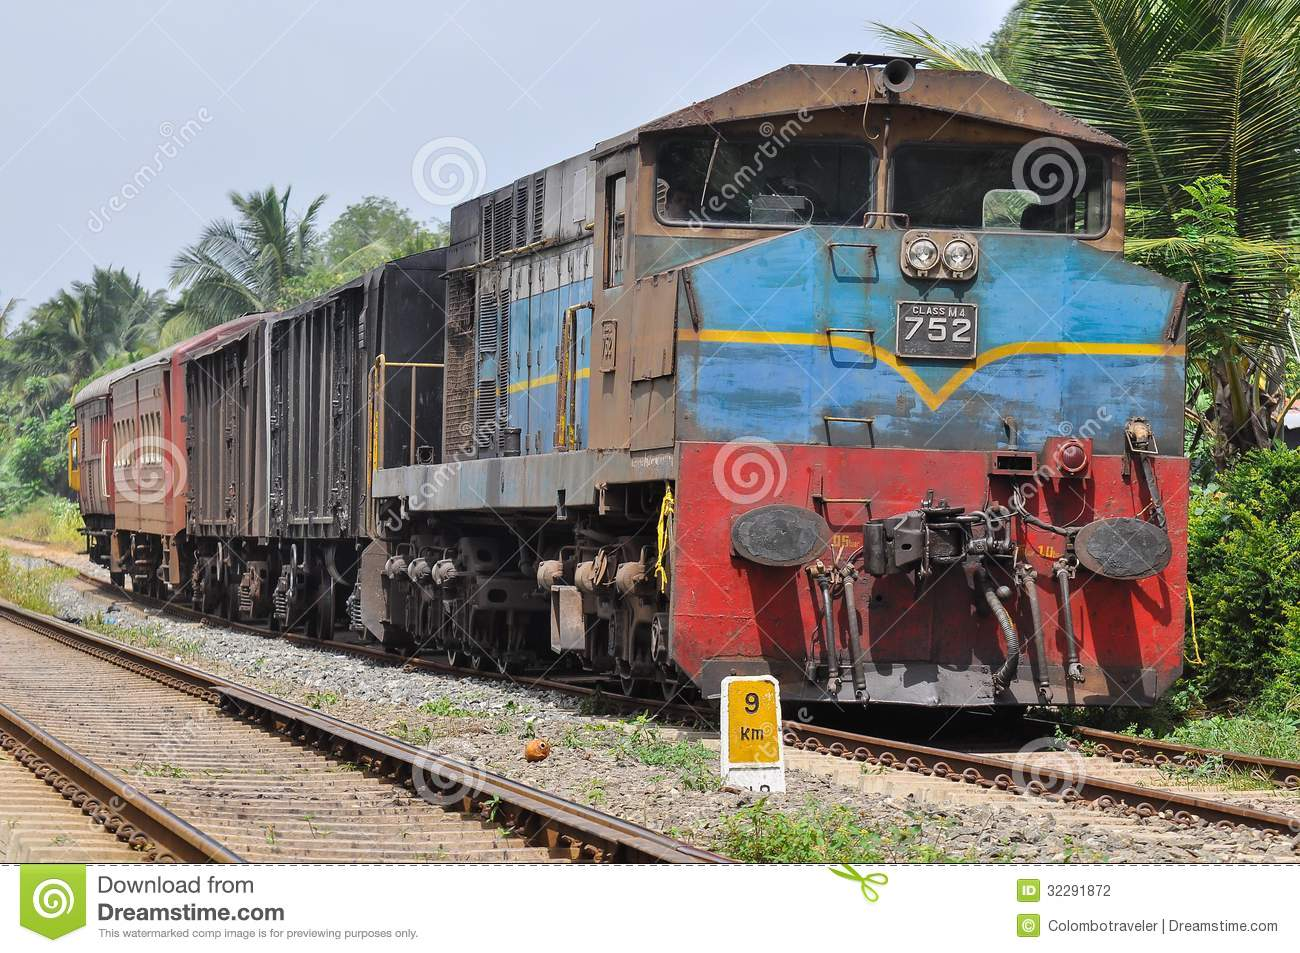 - old-petti-train-srilanka-badu-kalaniya-32291872